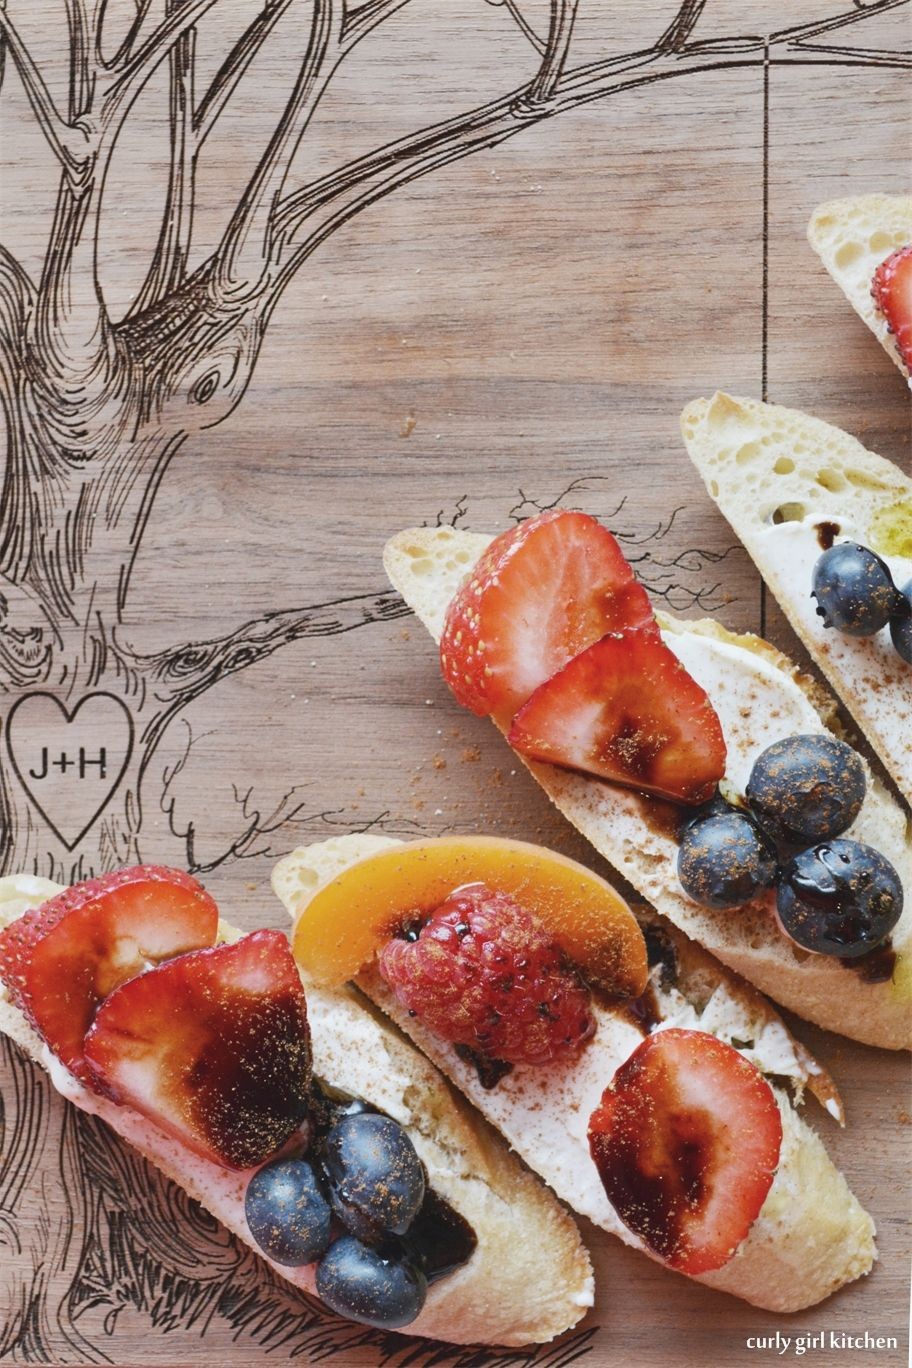 Curly Girl Kitchen: Berry Crostini with Cream Cheese, Balsamic and Blood Orange Olive Oil